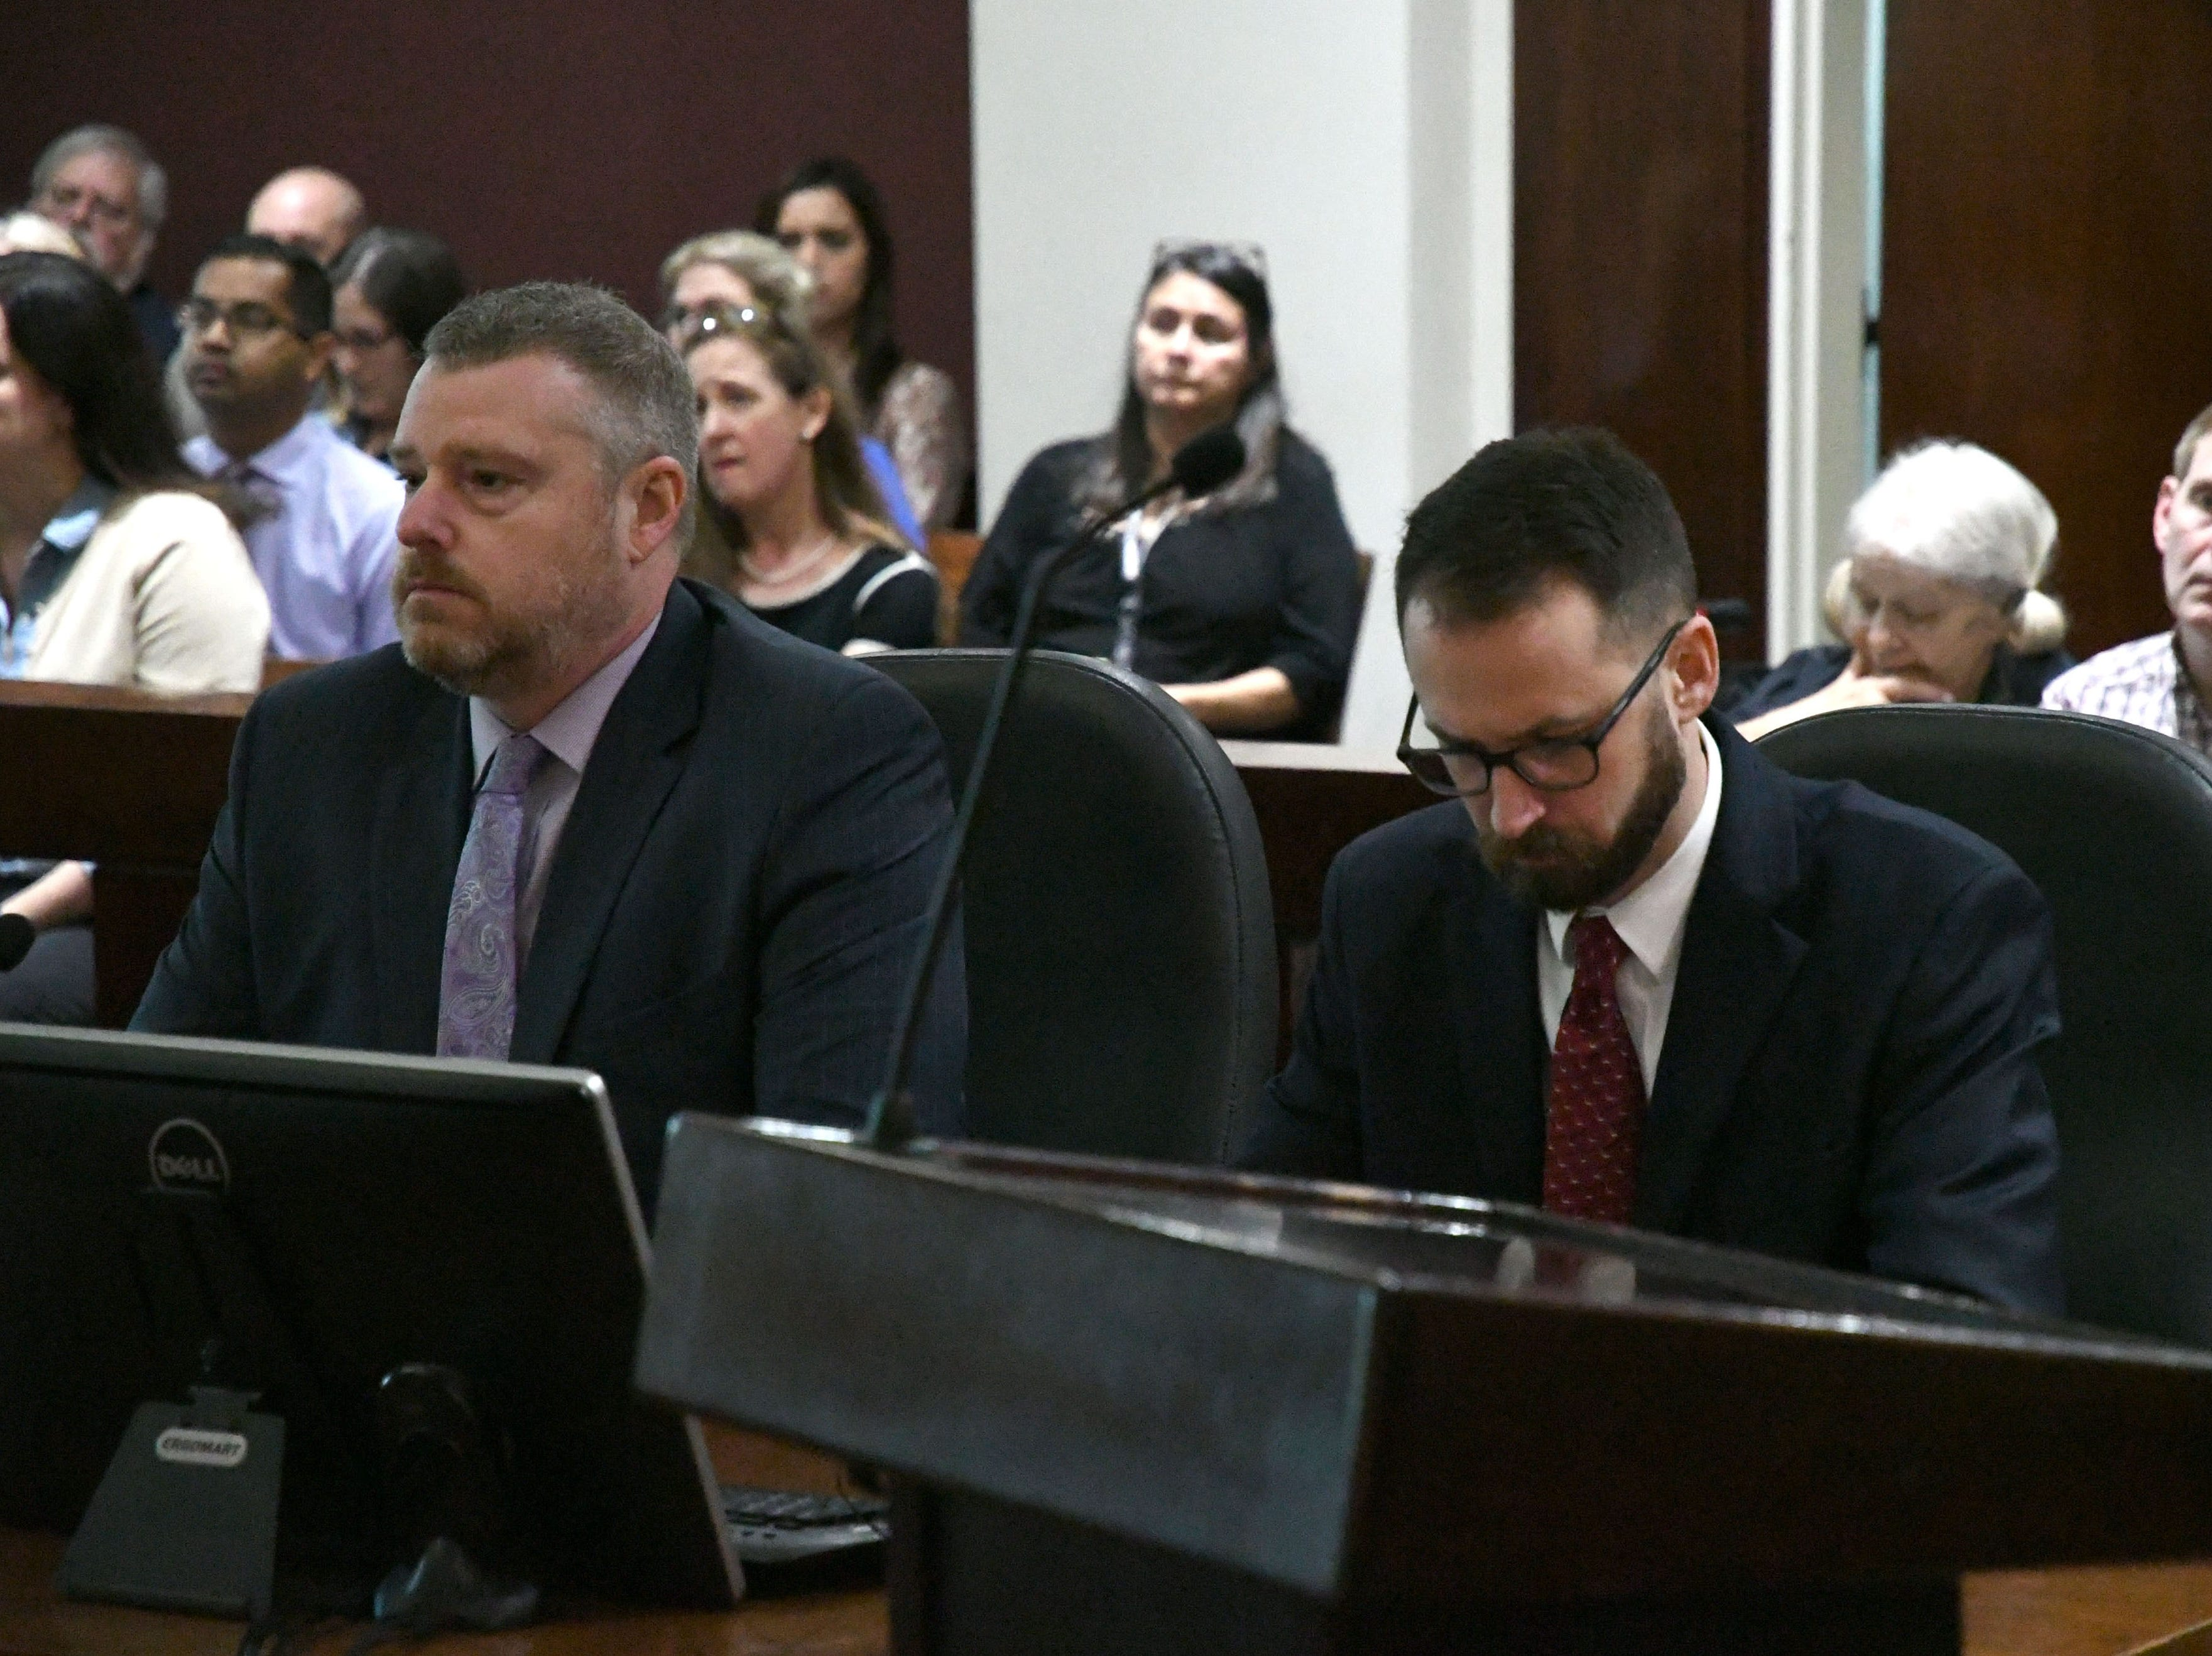 Assistant state attorney Jon Fuchs, left, and assistant state attorney Andy Rogers await the arrival of Judge James C. Hankinson and the sentencing of Denise Williams for the murder of her husband Mike Williams. Williams was sentenced to life in prison plus thirty years, Wednesday Feb. 6, 2019.